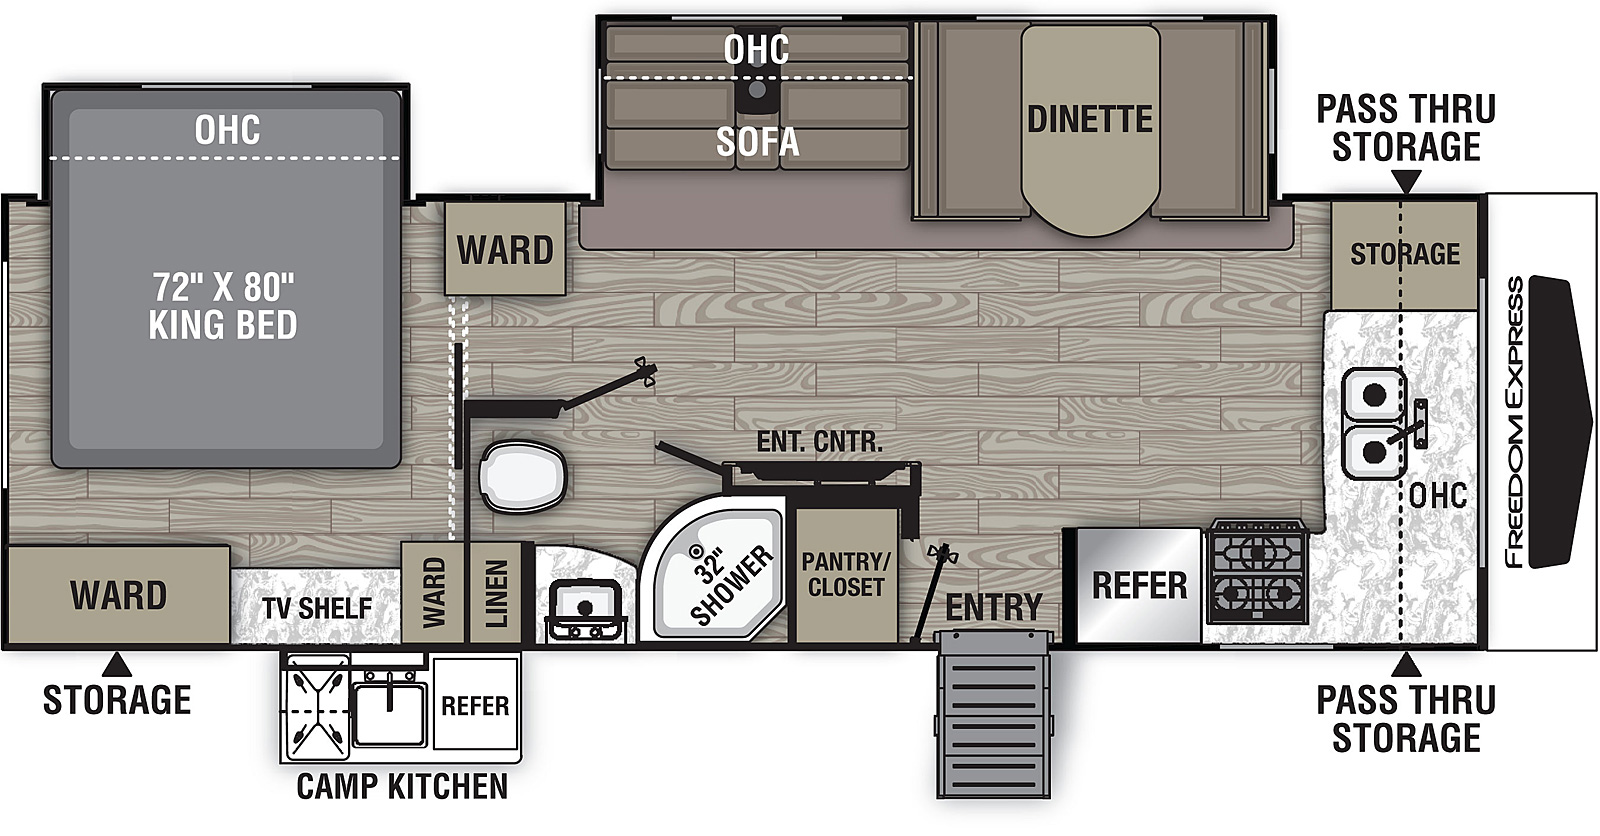 Floorplan for Freedom Express Ultra Lite Travel Trailers model 259 FKDS